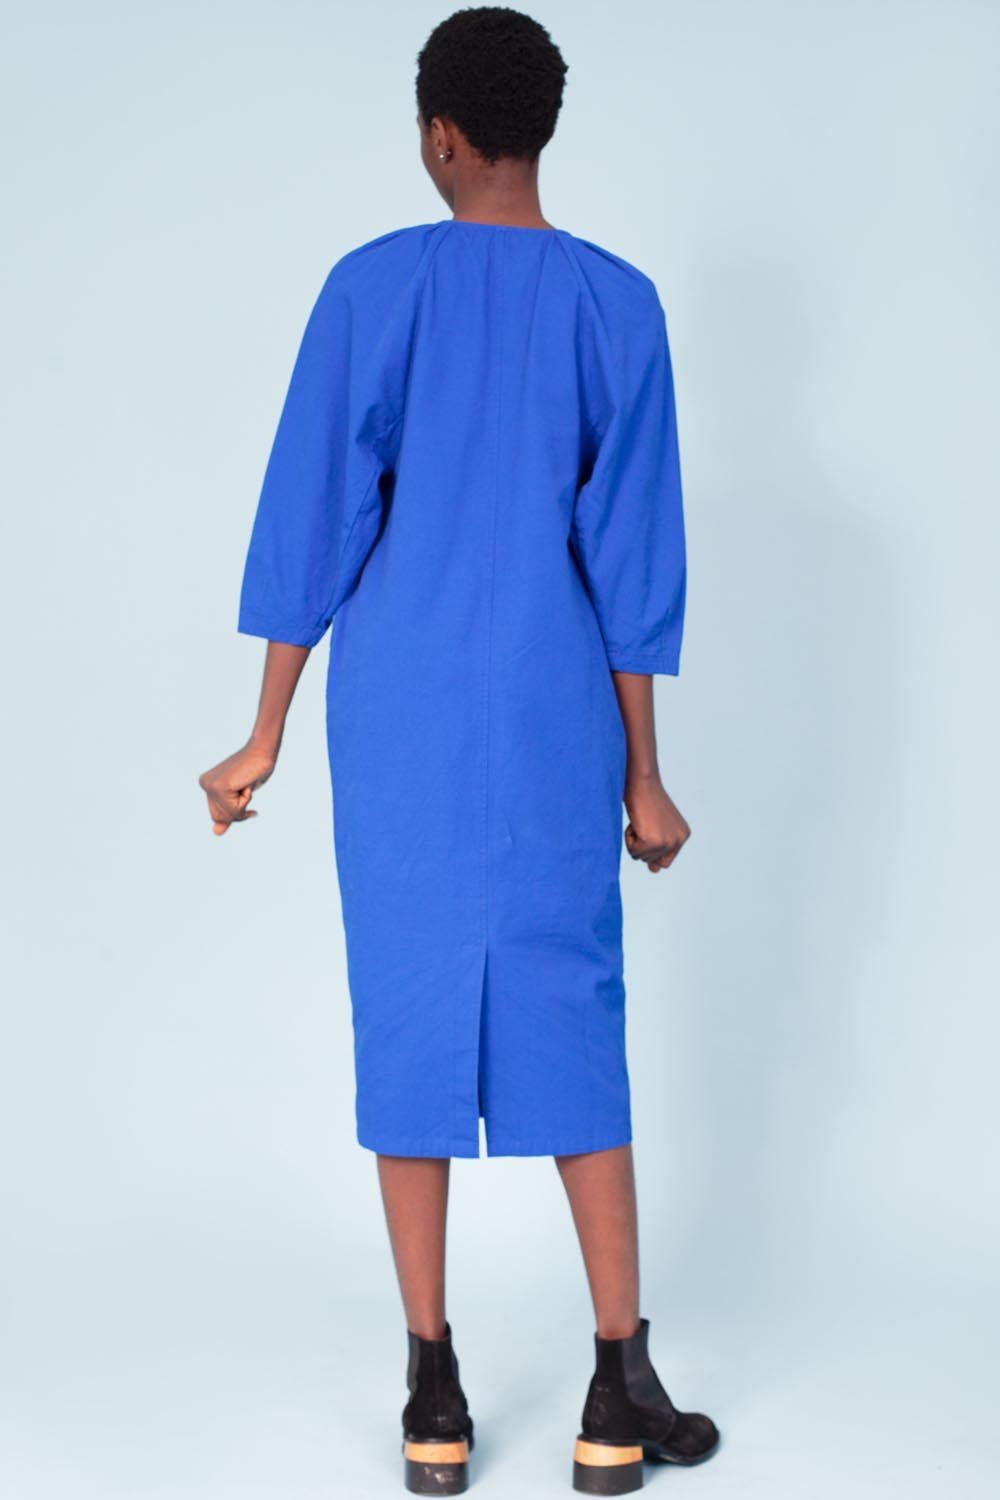 L.F. Markey Mercer Dress // Cobalt